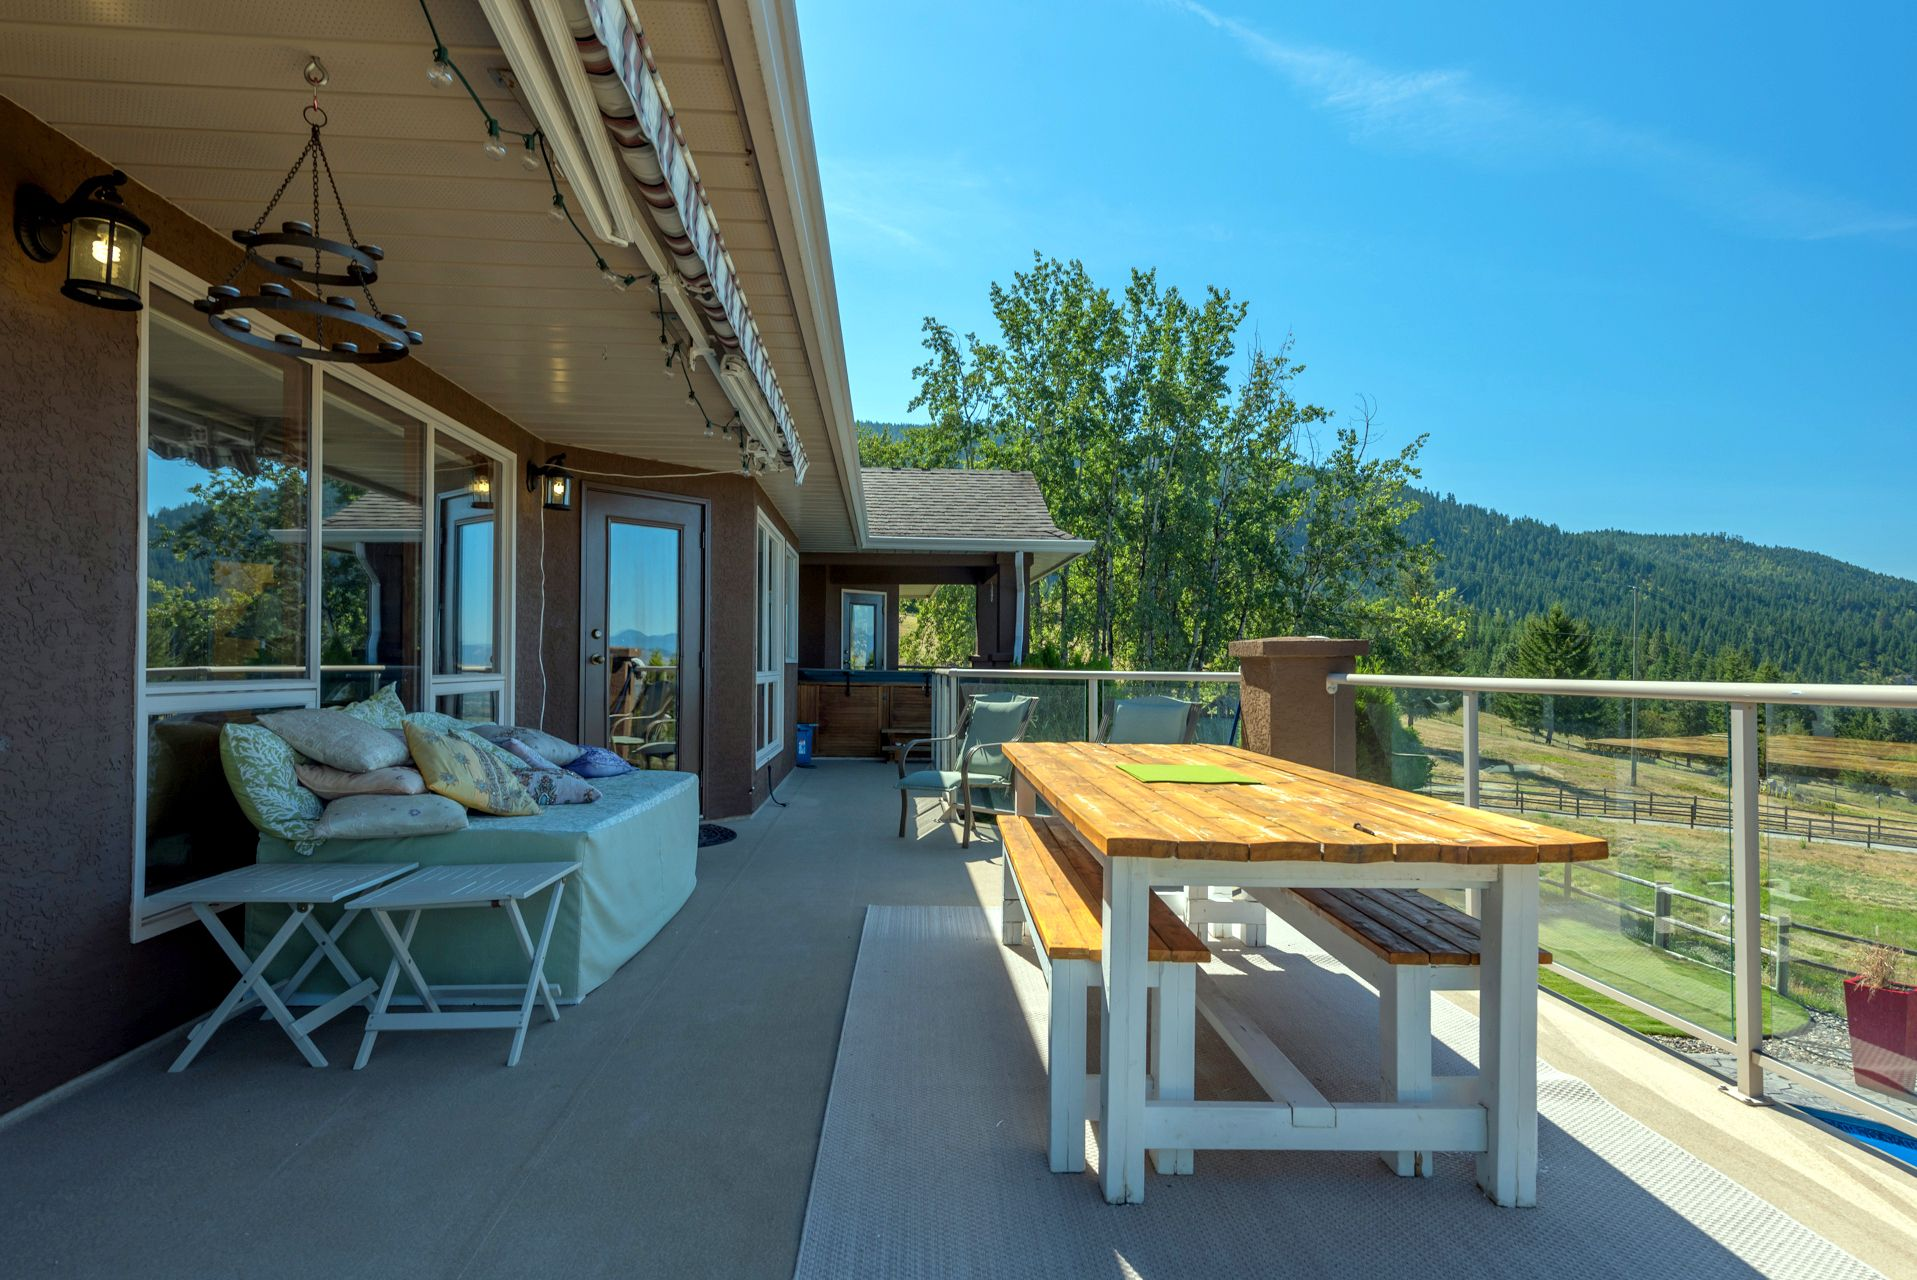 This is Actually the Fresh Image Of Patio Homes for Sale Vernon Bc